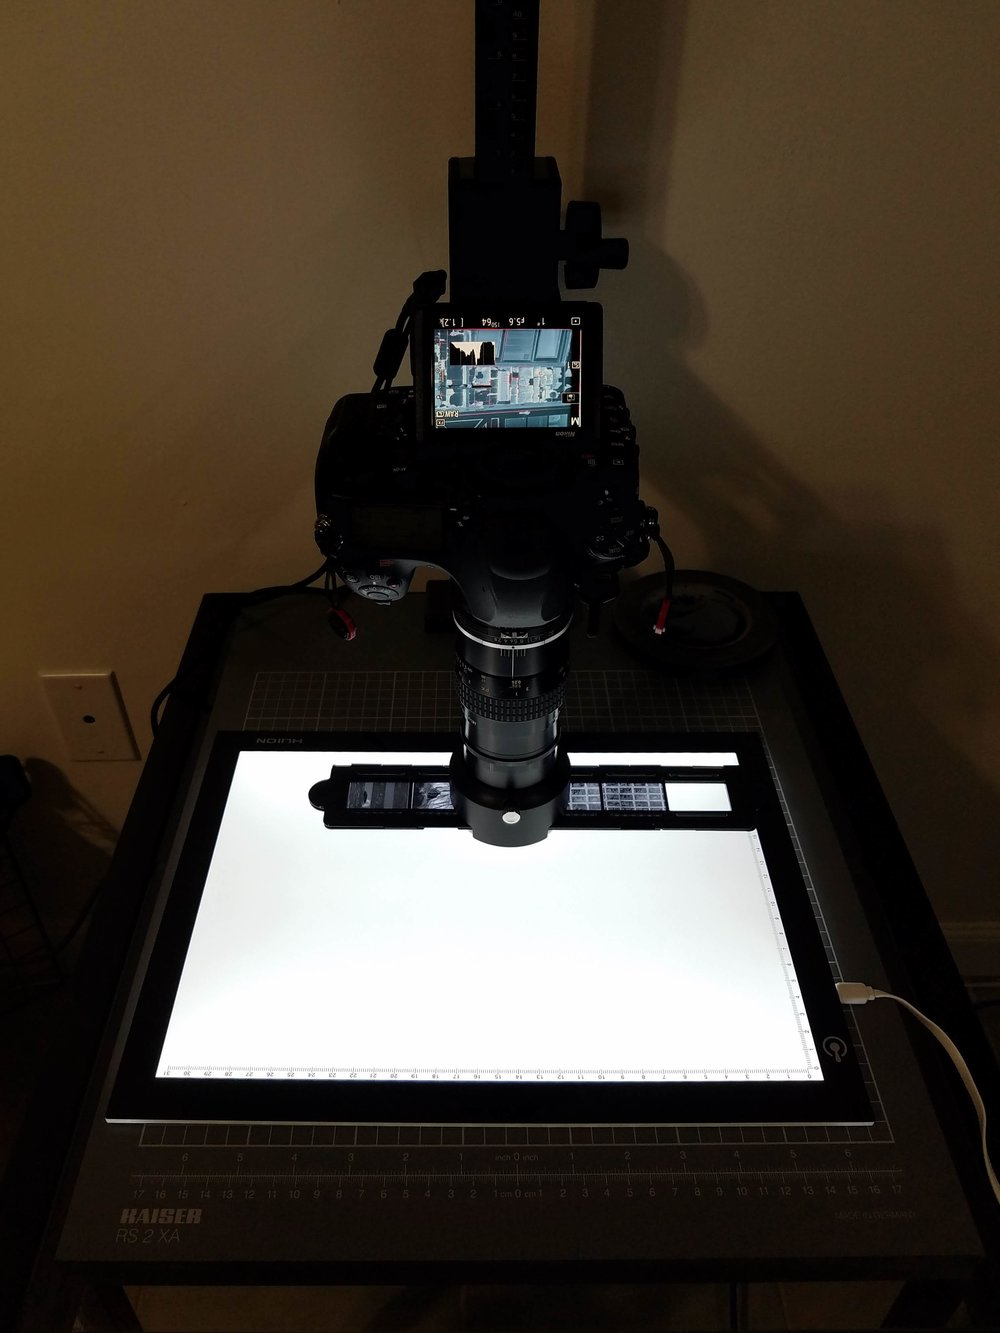 Here is the set-up I used. Basically a  copy stand  and a  light pad . You don't actually need either of these things, but I used them just because I happen to have them.